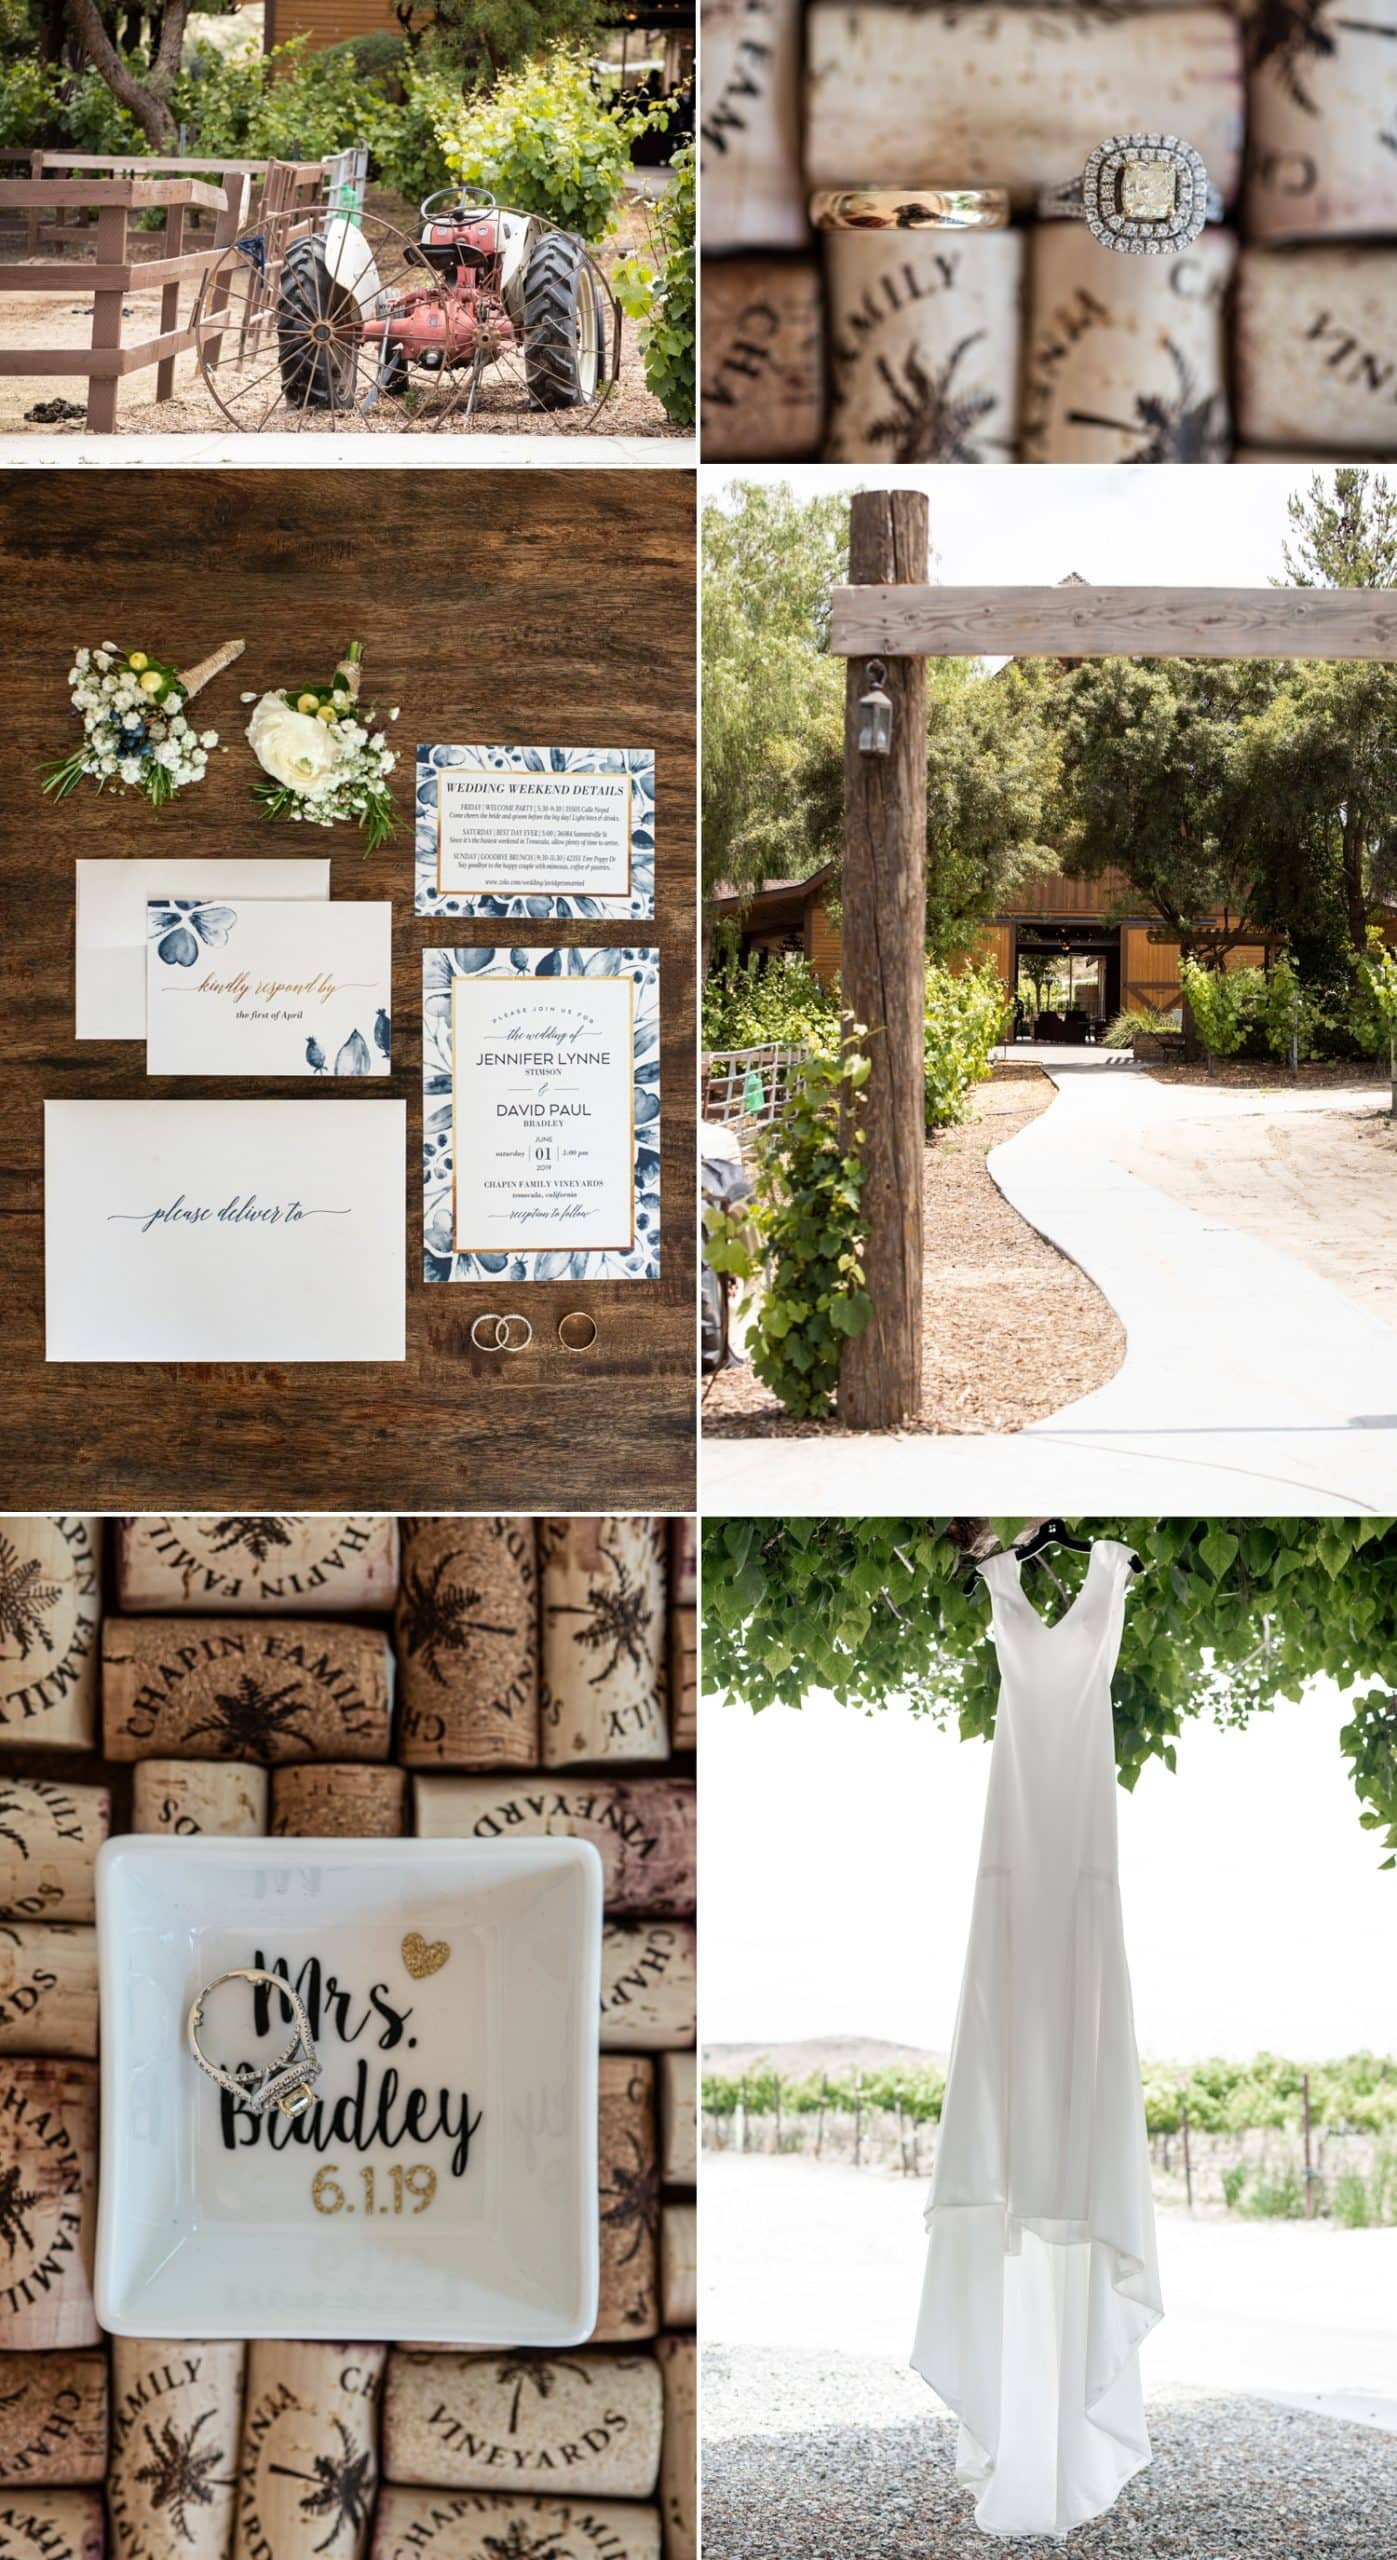 Wedding details at Chapin Family Vineyards.